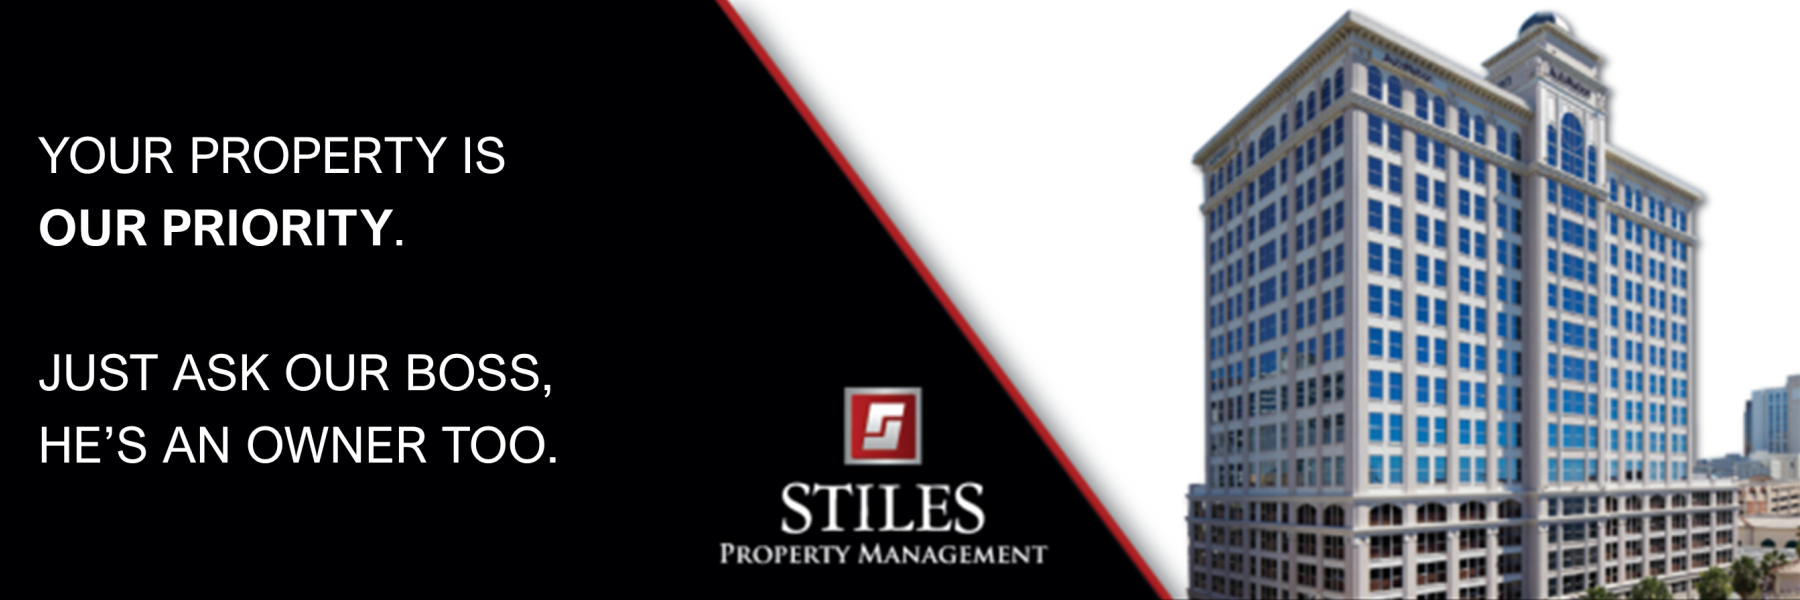 Stiles Property Management-1800X600